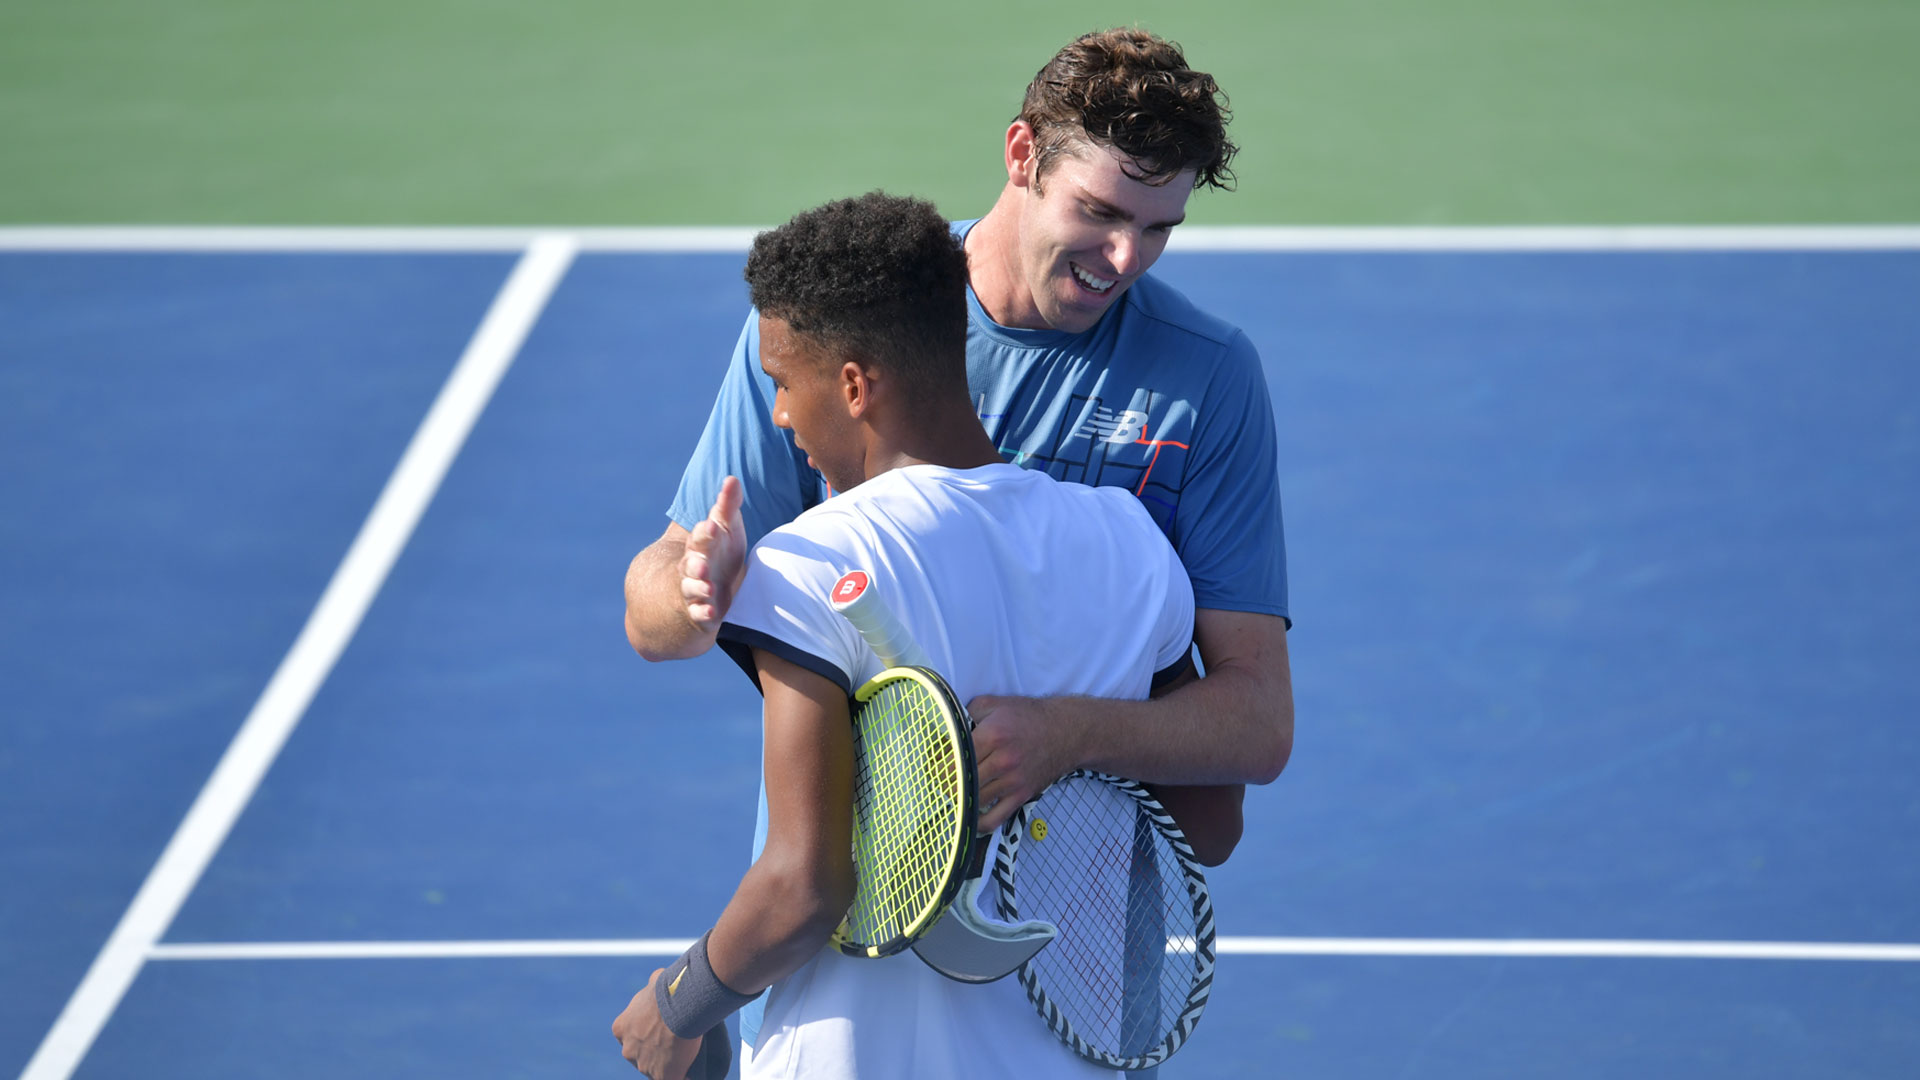 Auger-Aliassime and Opelka Washington 2019